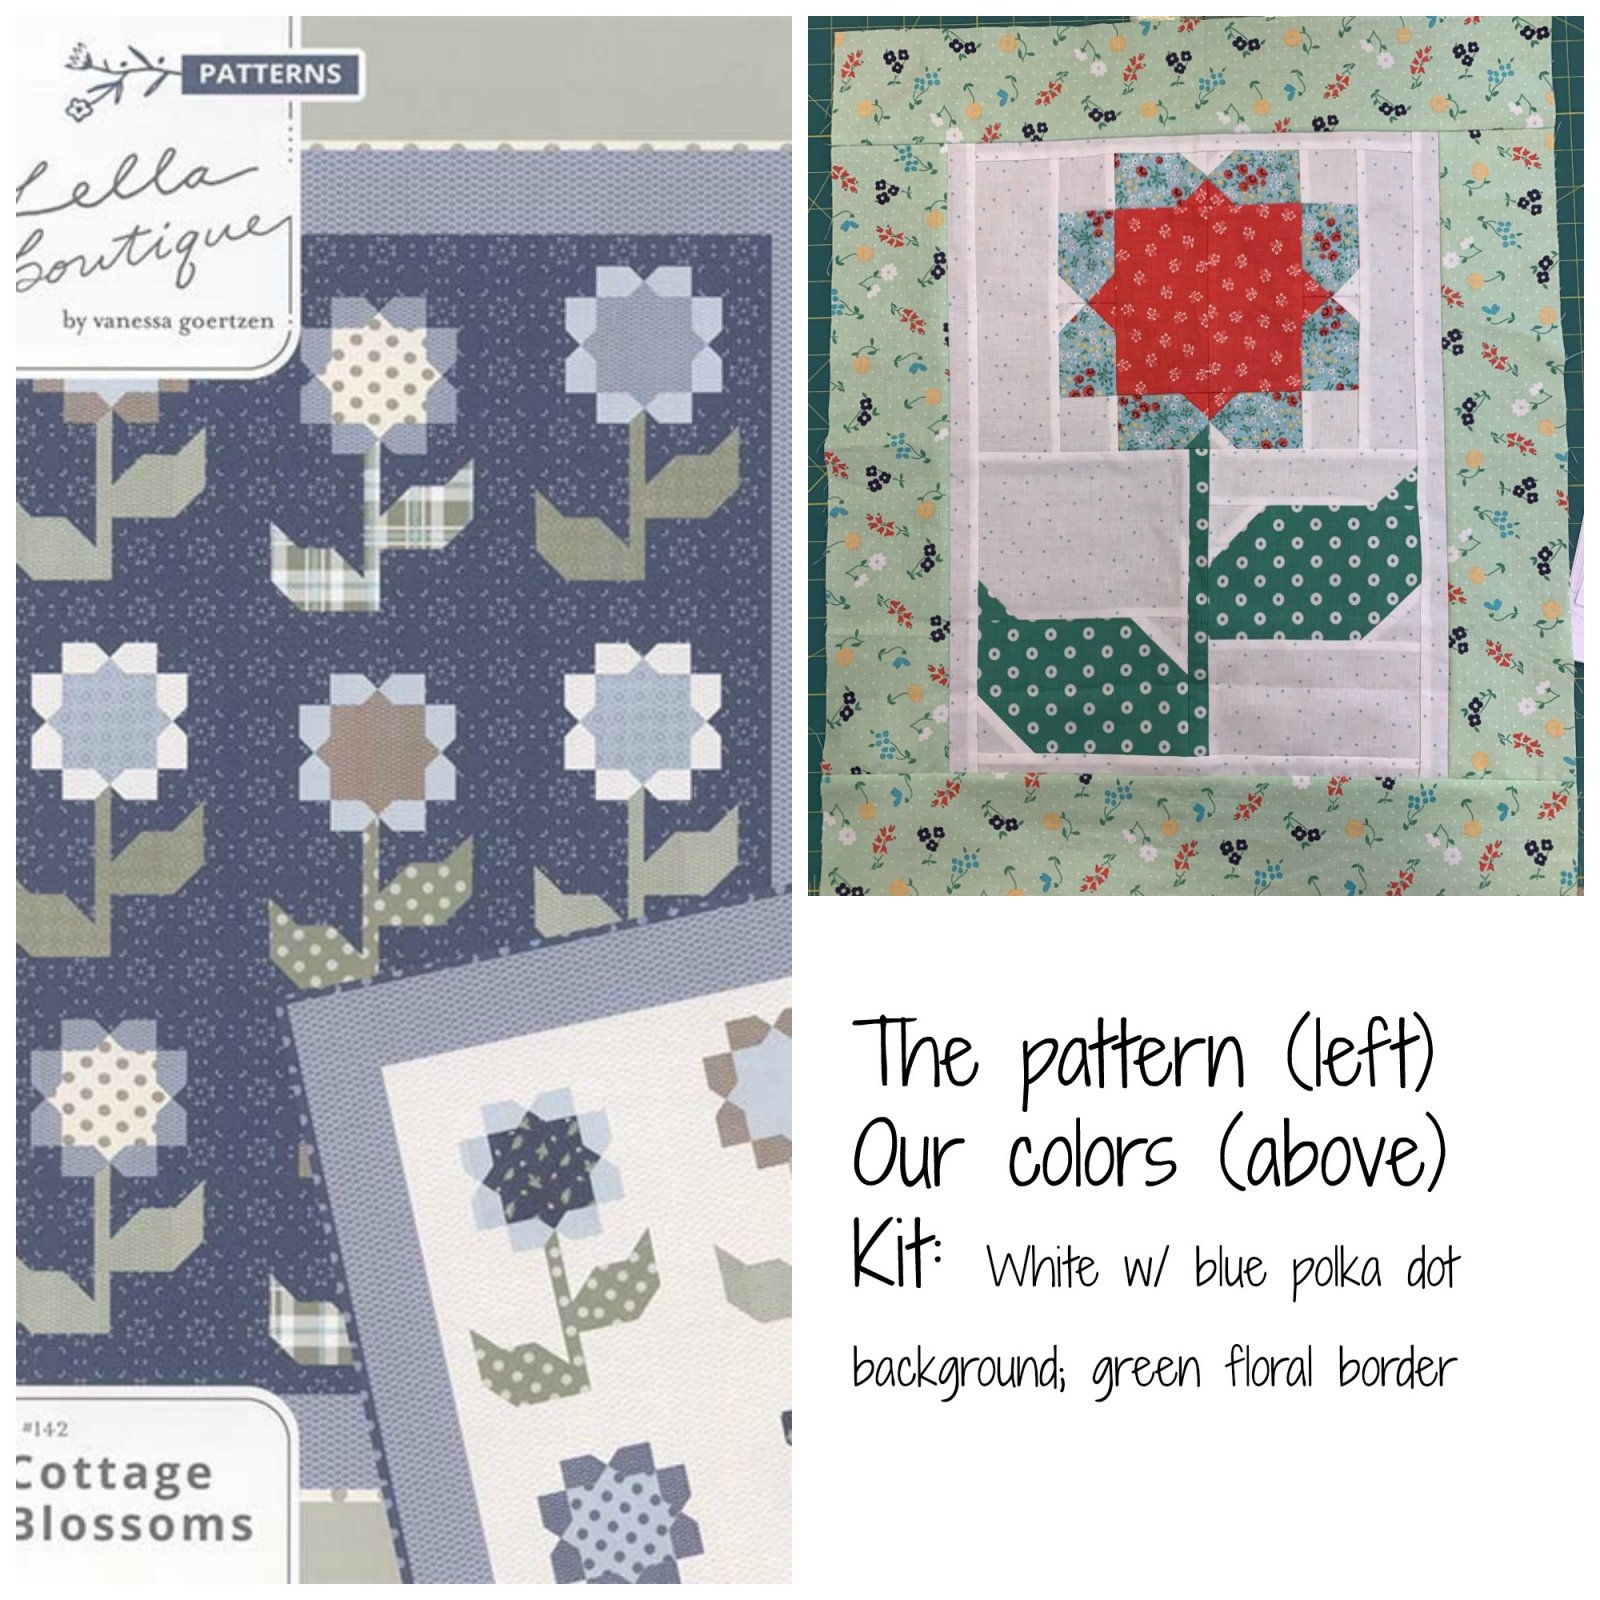 Cottage Blossoms w/ Sugarhouse- Kit